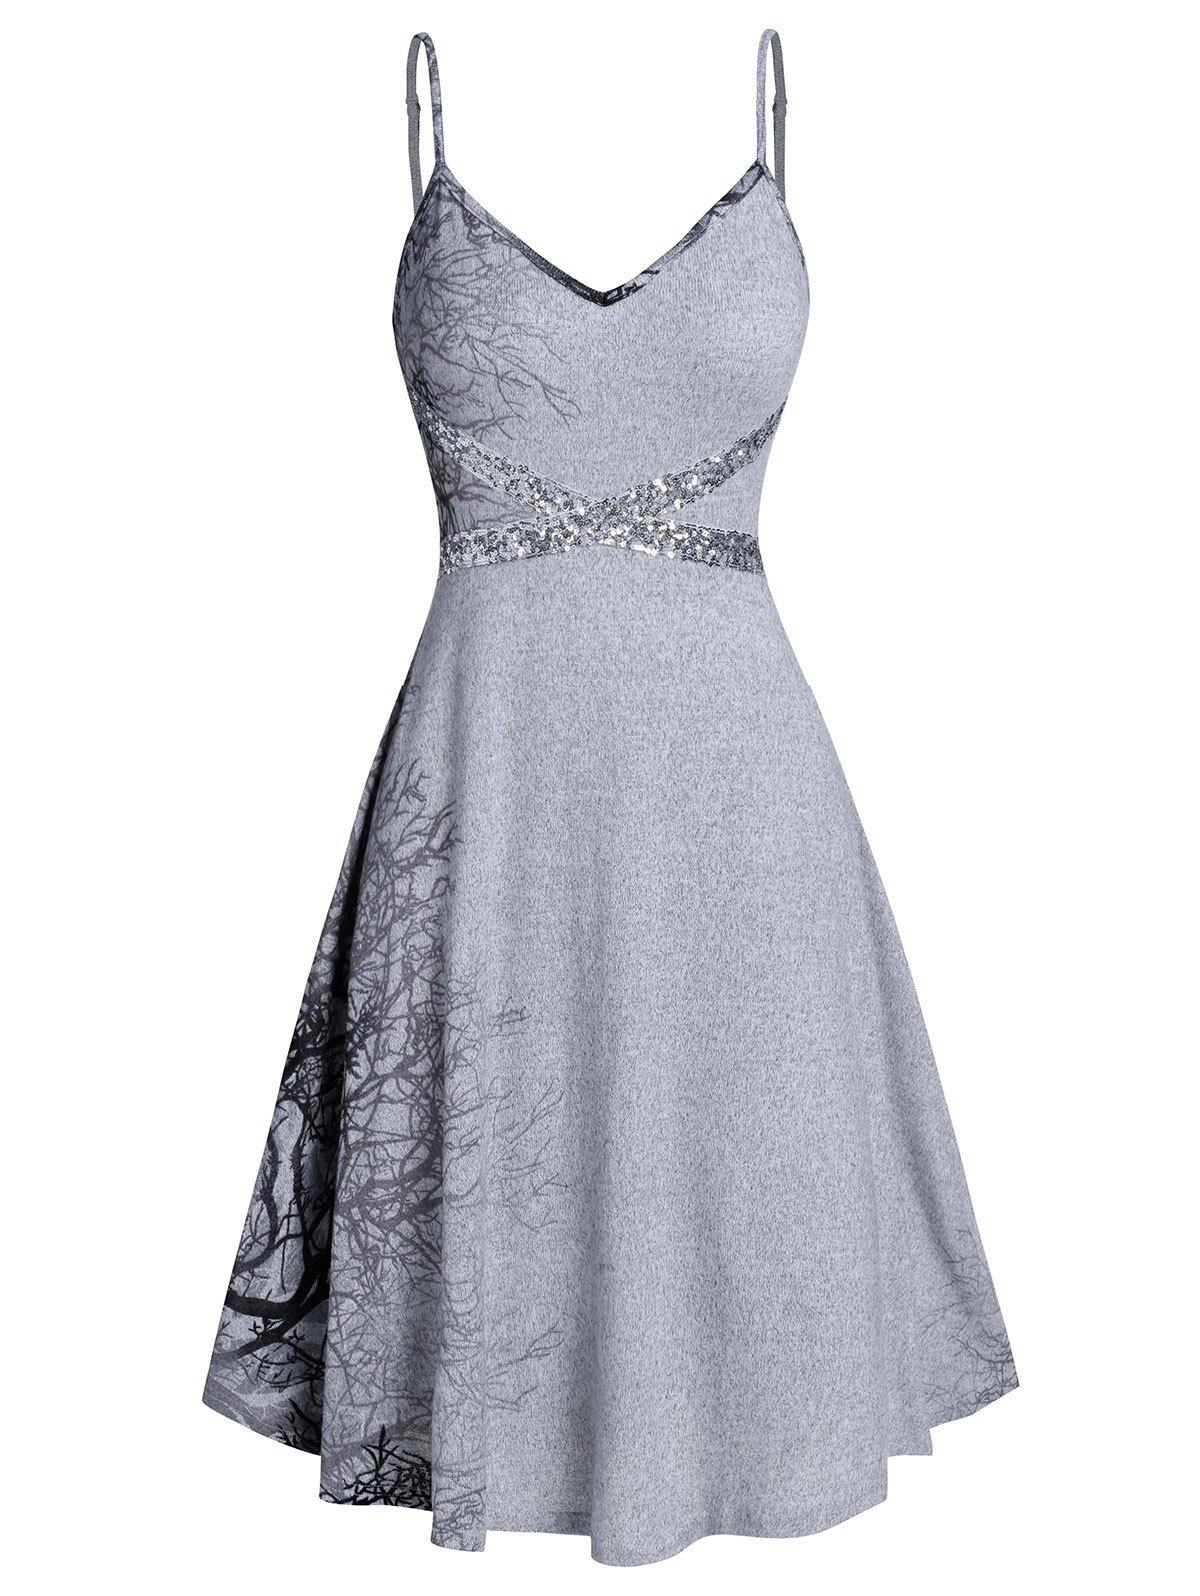 Cami Printed Sequined Mini Dress - GRAY CLOUD XL